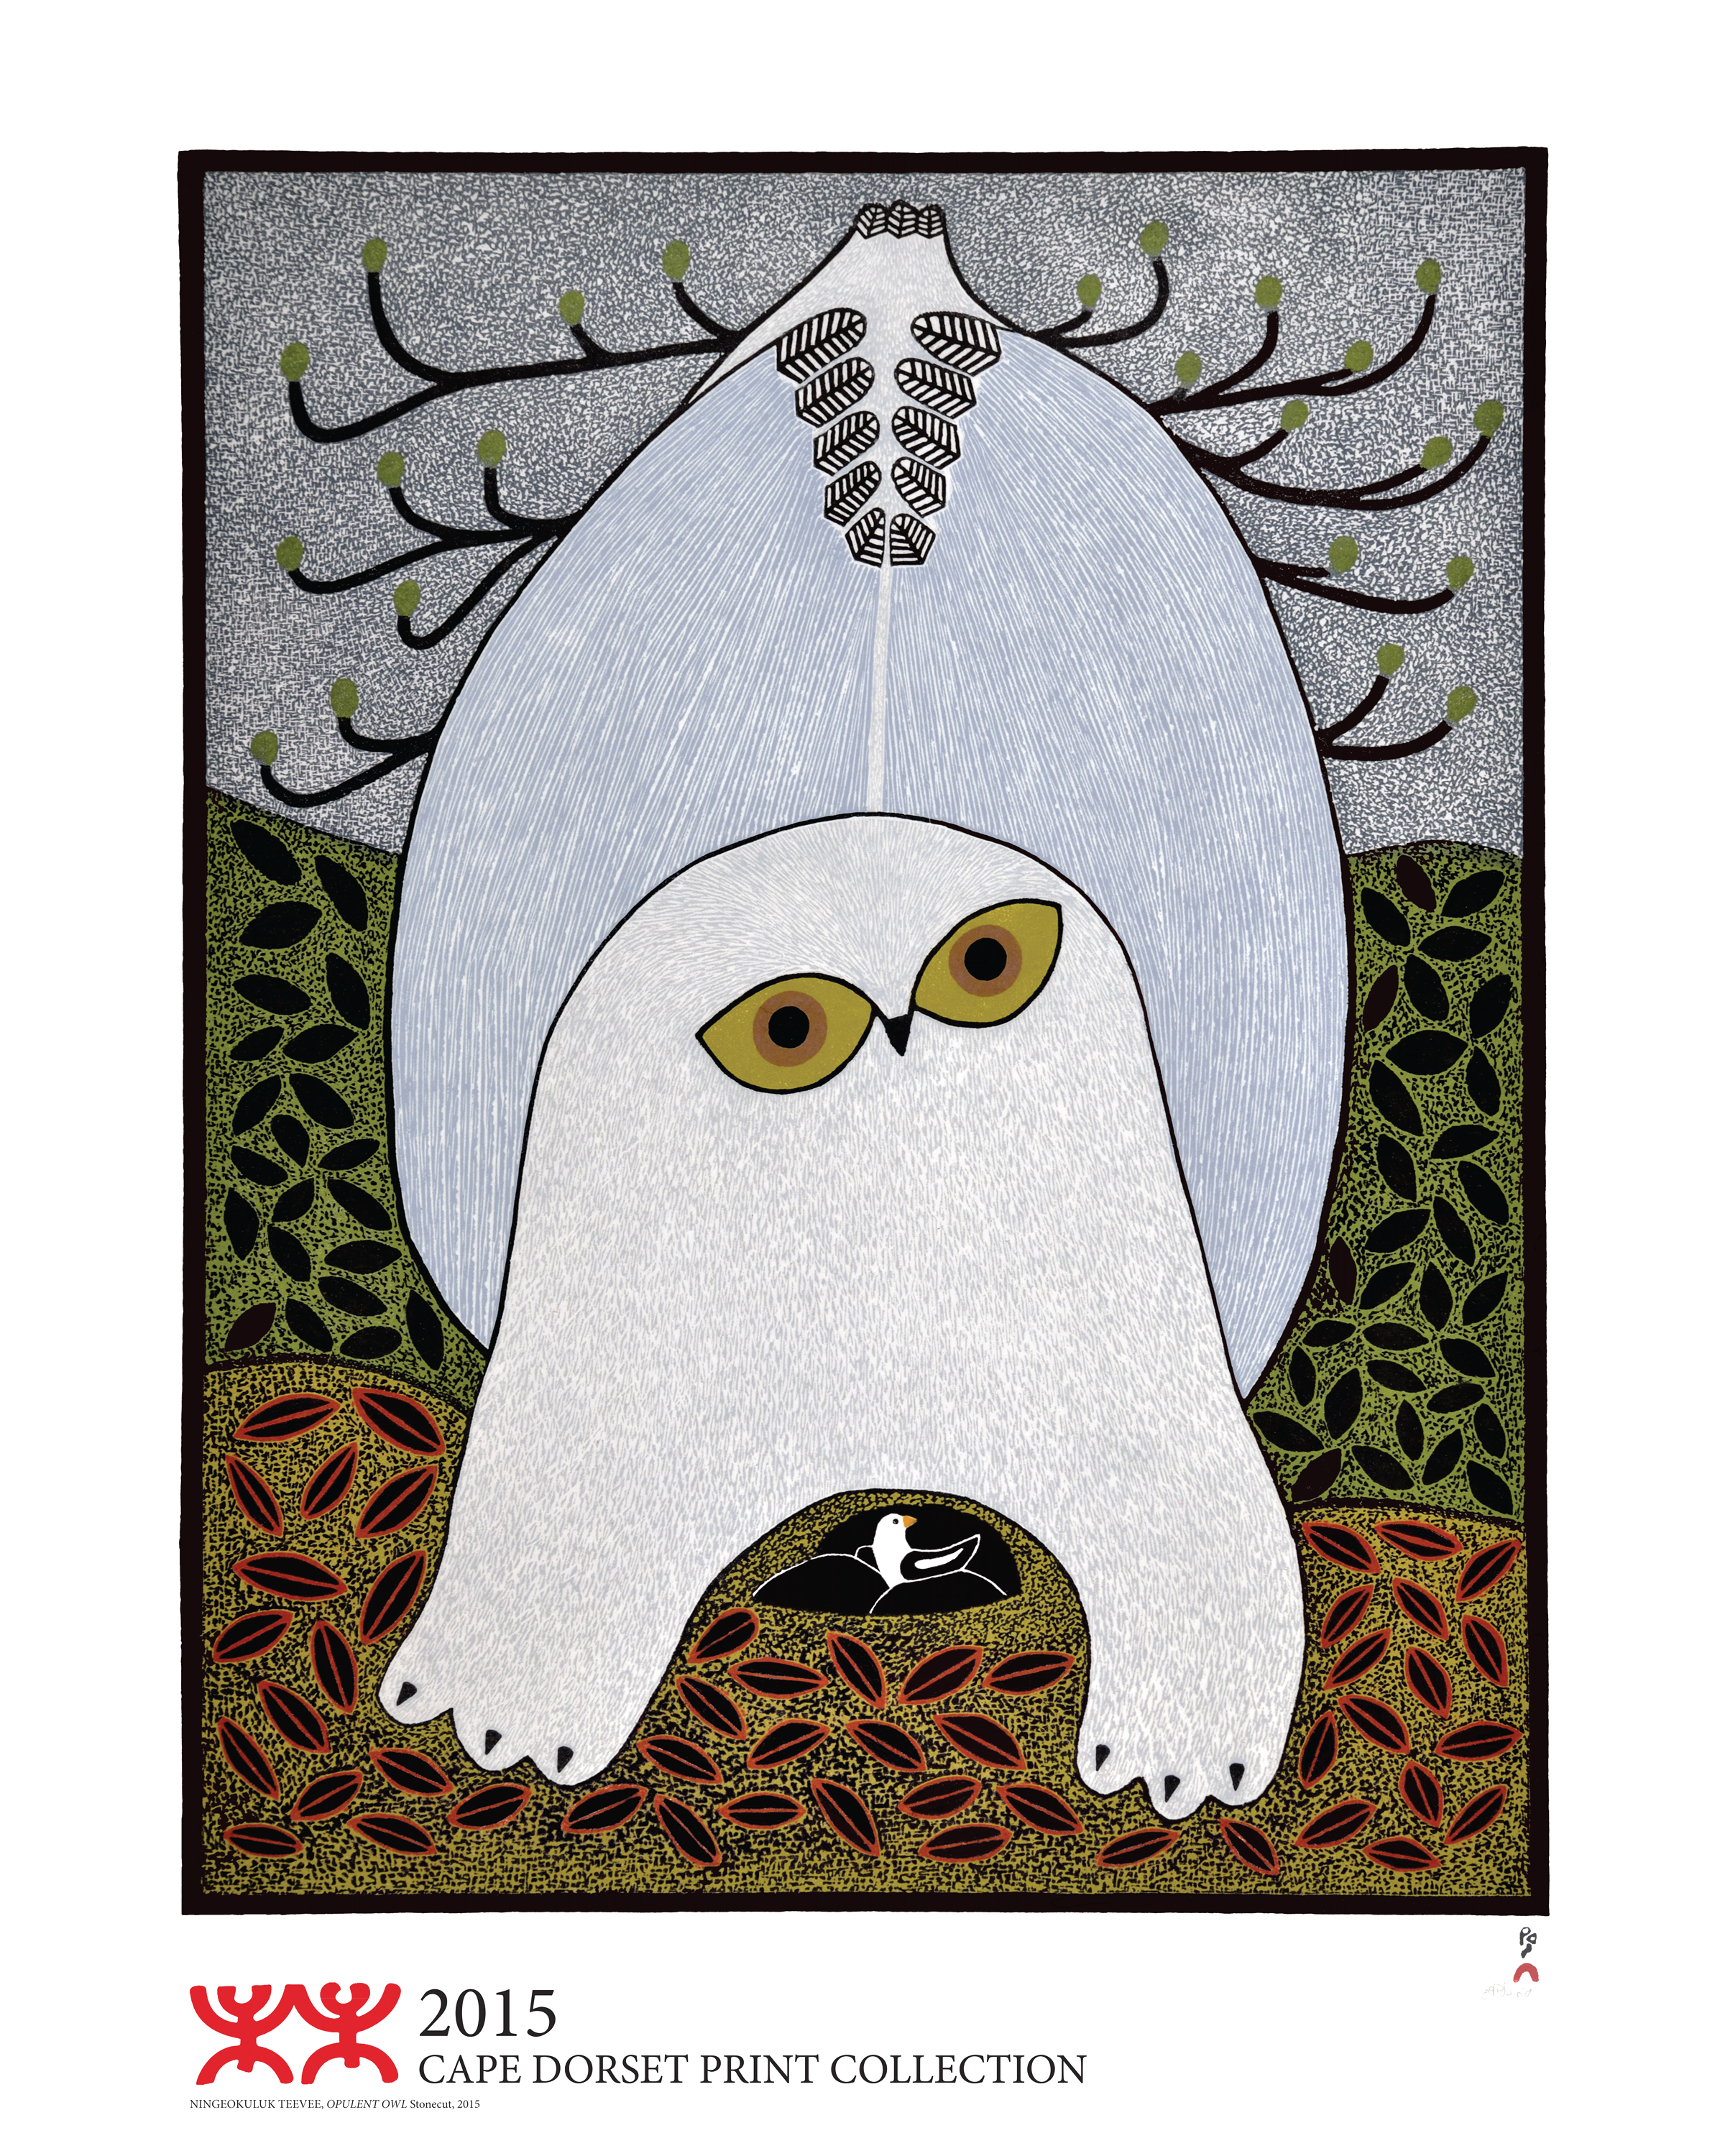 2015 CAPE DORSET PRINT COLLECTION POSTER  NINGEOKULUK TEEVEE OPULENT OWL  POSTER SIZE 24 x 30 in